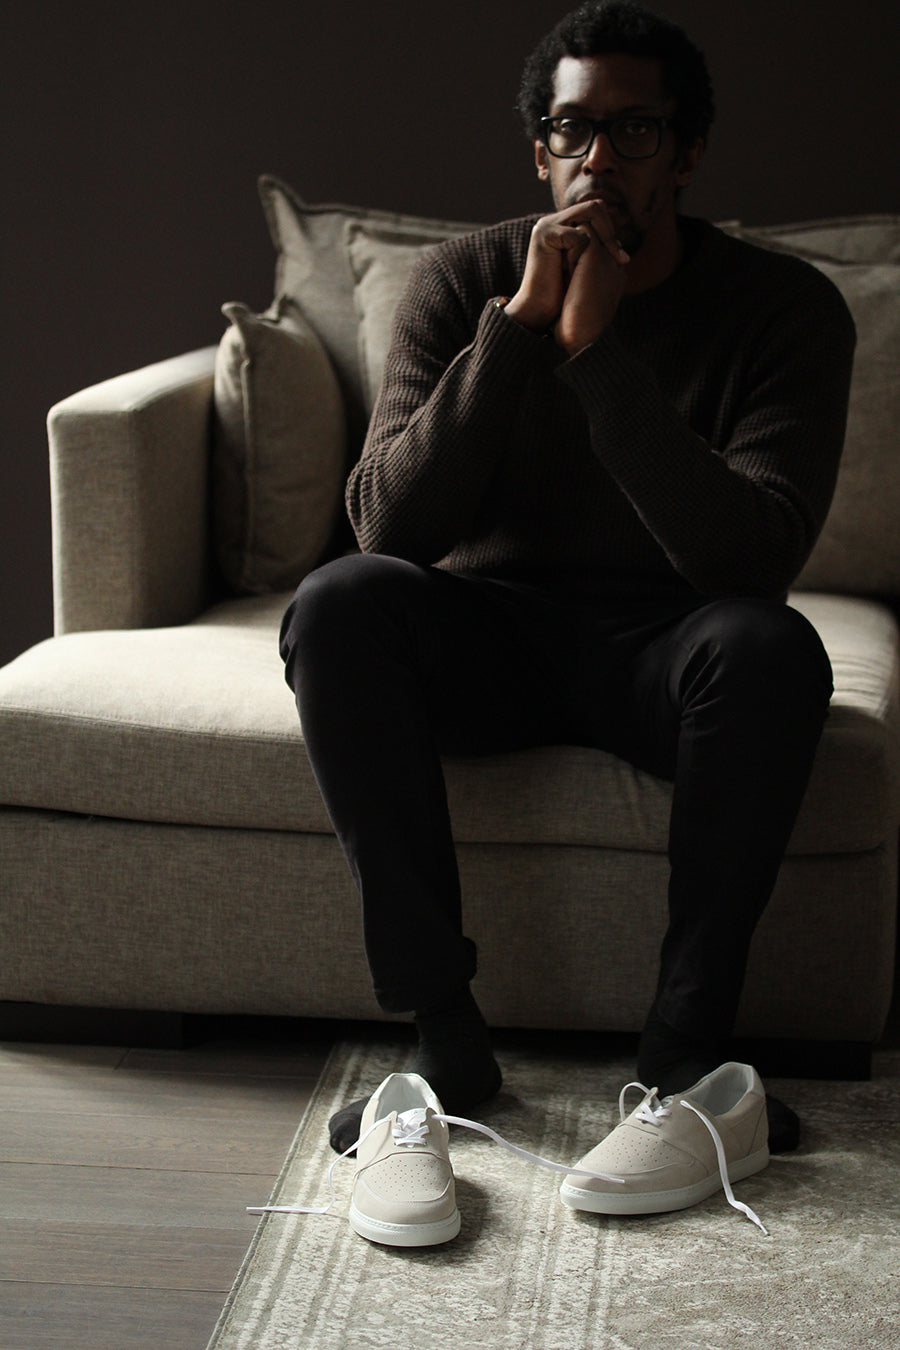 jean-philippe-aline-sits-and-thinking-pyla-suede-wheat-sneakers-on-the-floor-from-timothee-paris